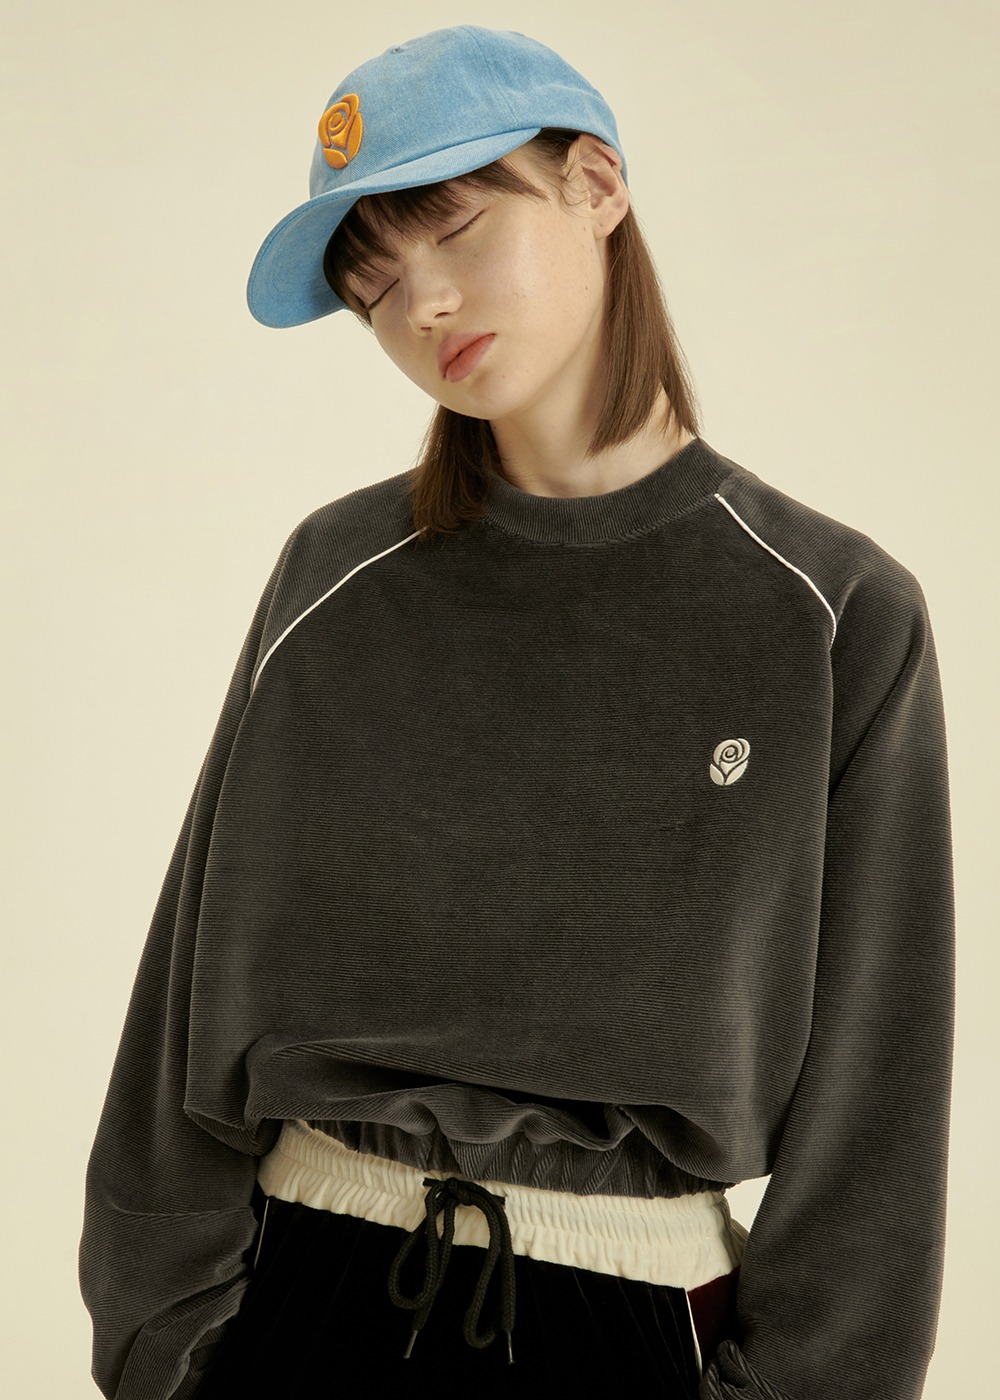 Velvet Rose Crop Sweatshirt [CHARCOAL]Velvet Rose Crop Sweatshirt [CHARCOAL]자체브랜드